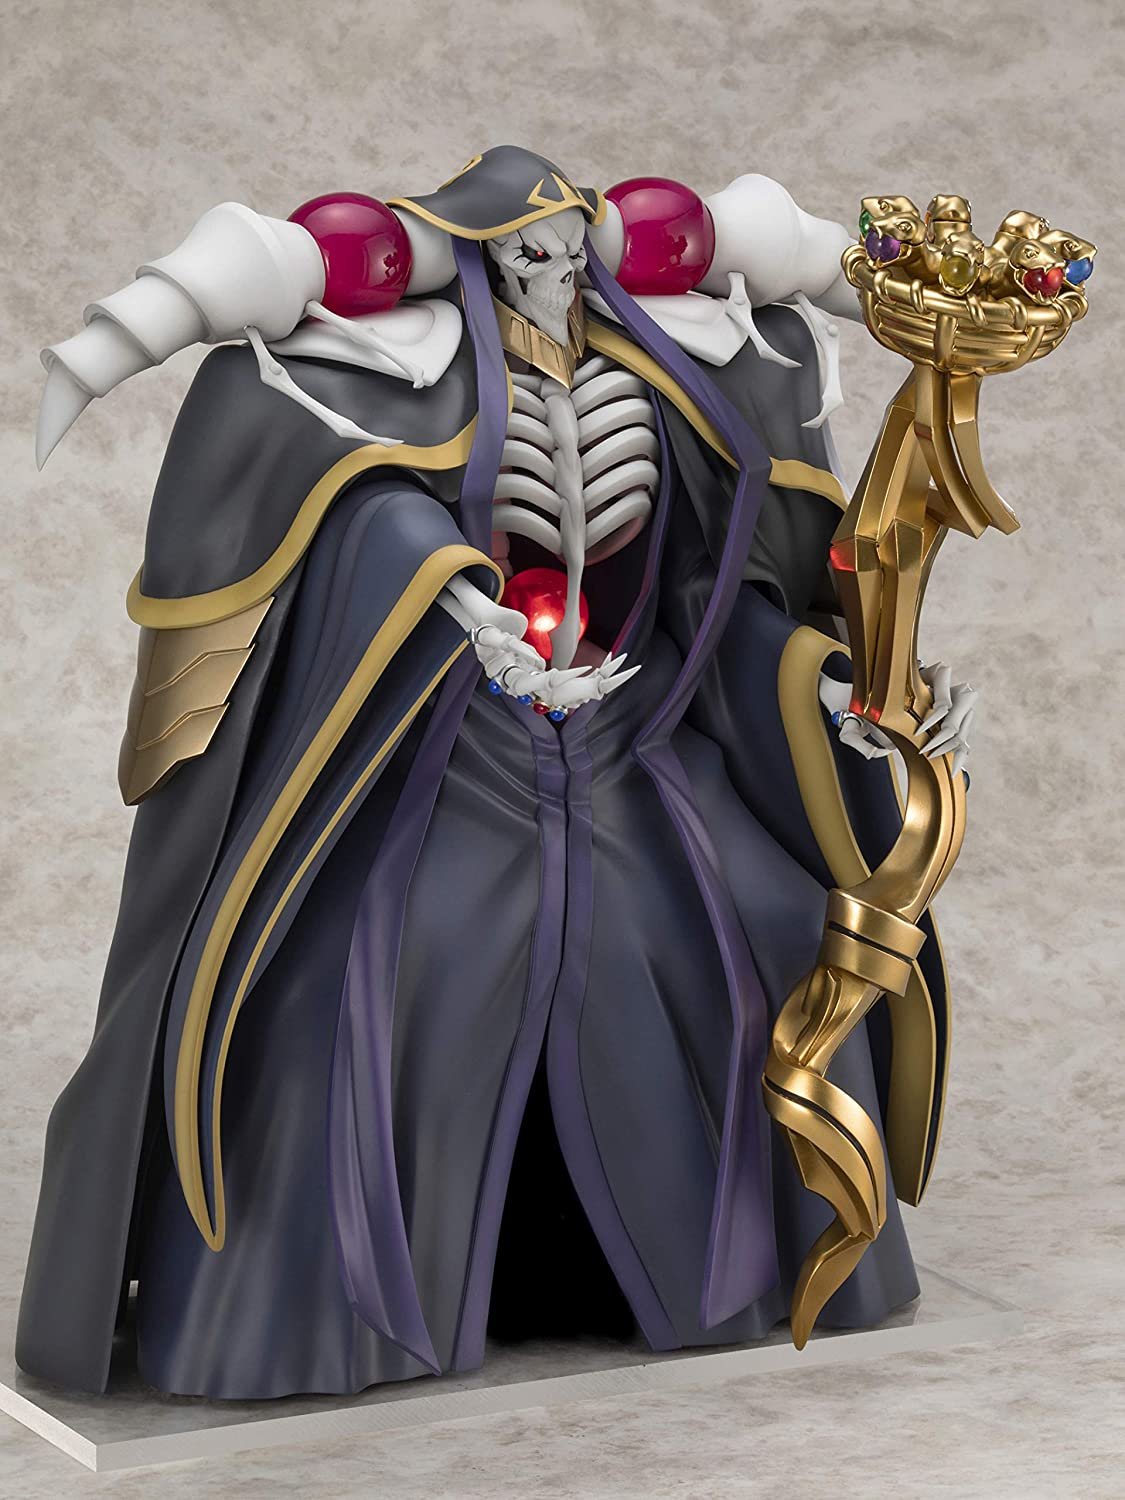 Multicolor Ainz Ooal Gown 1 Furyu Overlord 7 Scale PVC Figure